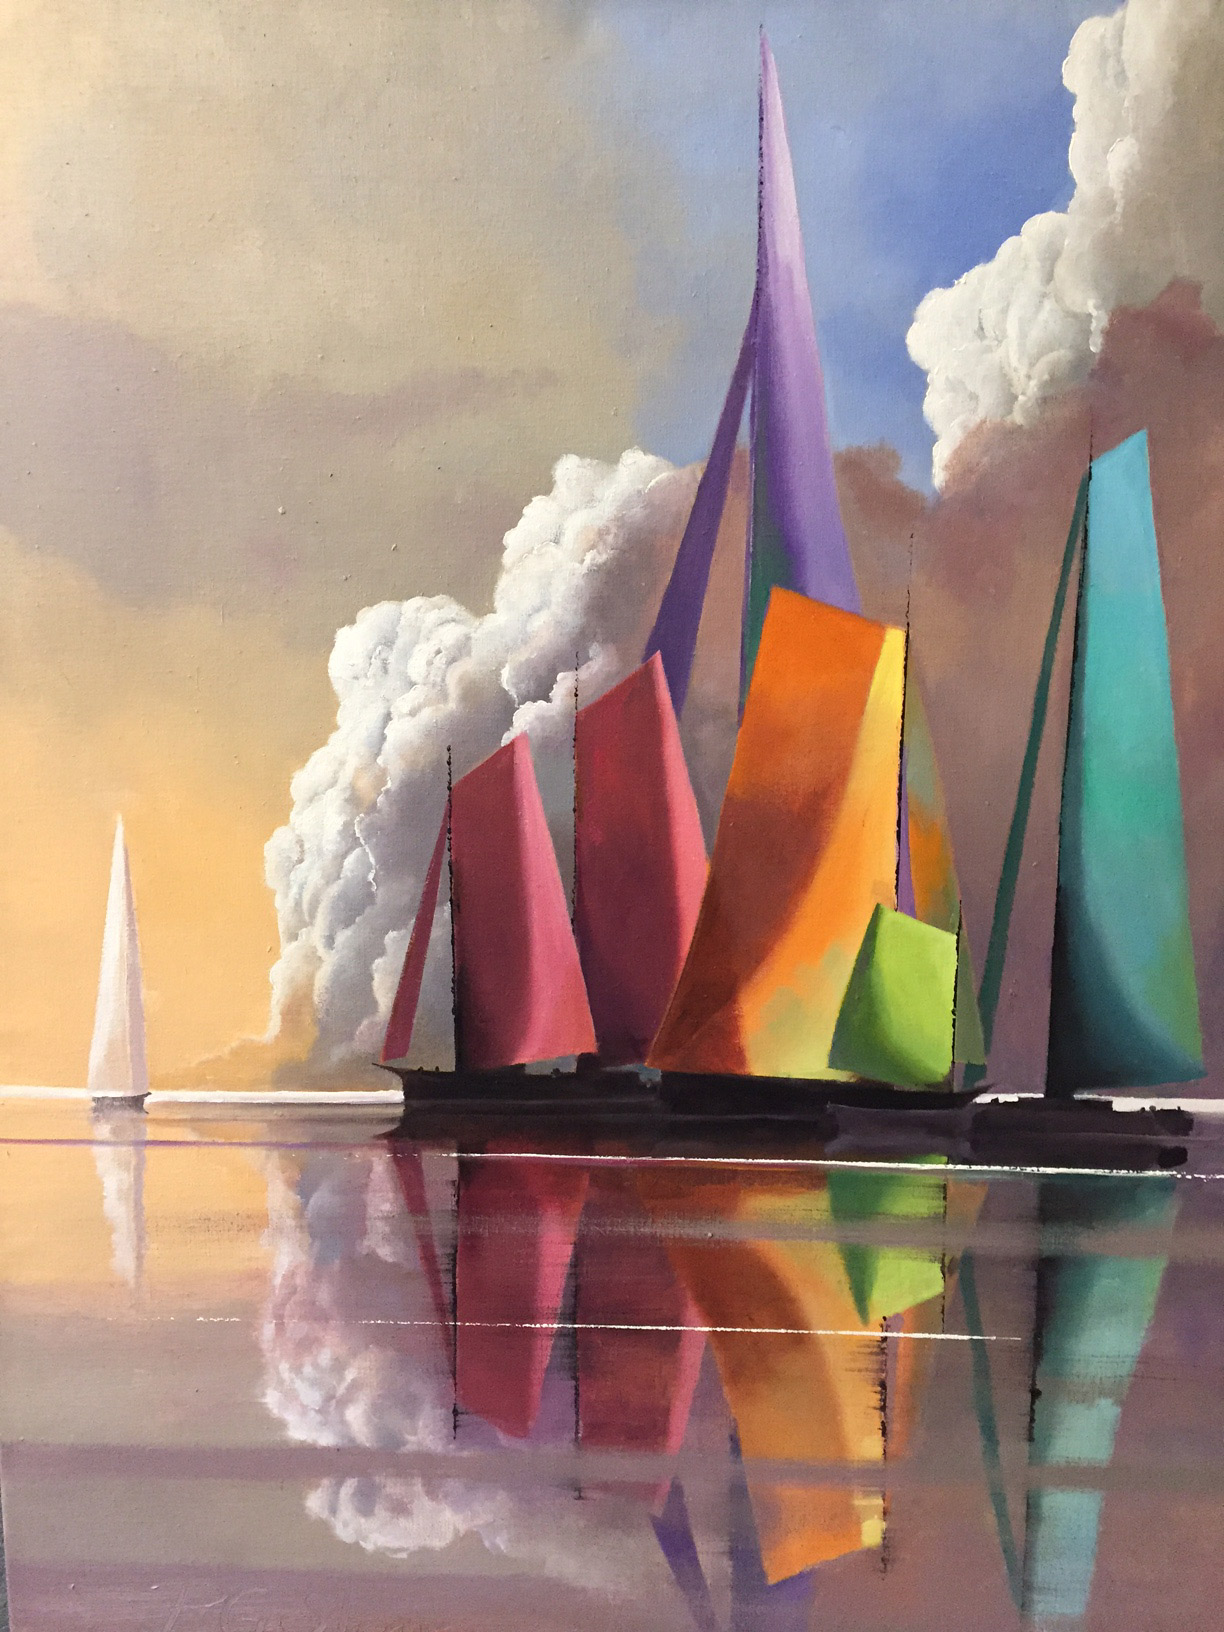 A Spectrum of Sails by Paul Stone